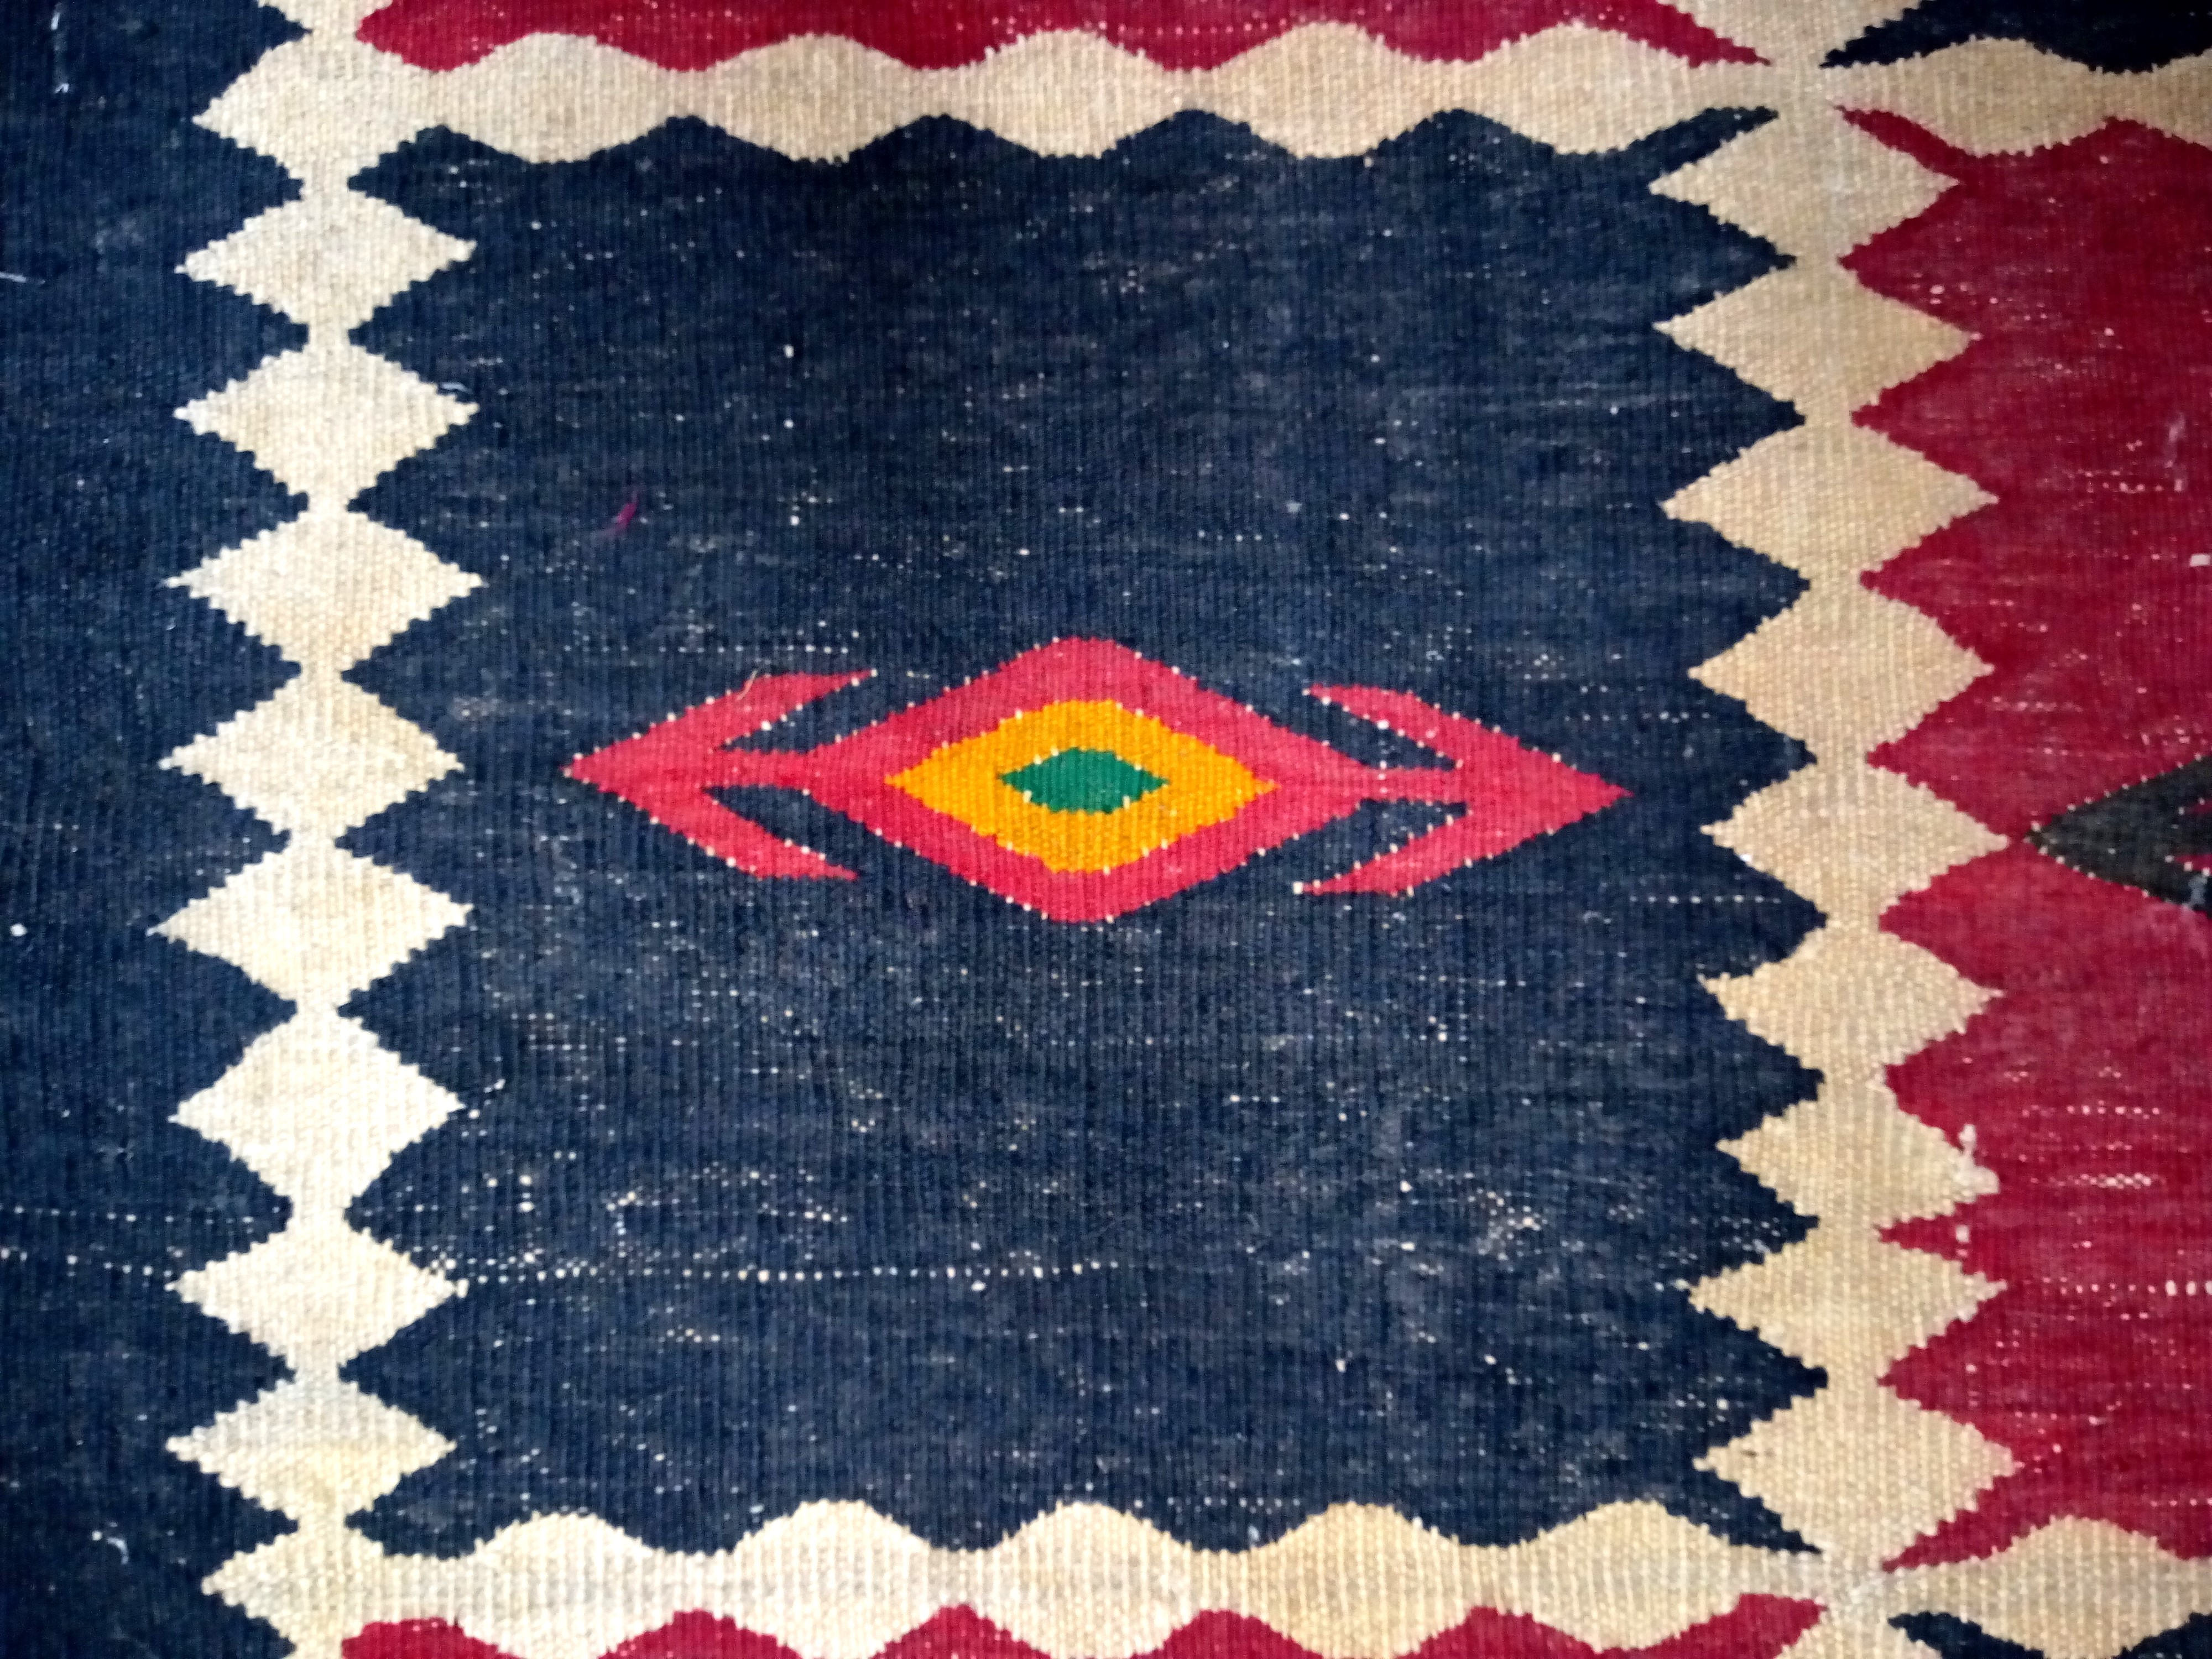 Afghan Kilim. This large, heavy rug is from the Labijar region of north Afghanistan. 420 x 195cm. - Image 2 of 2